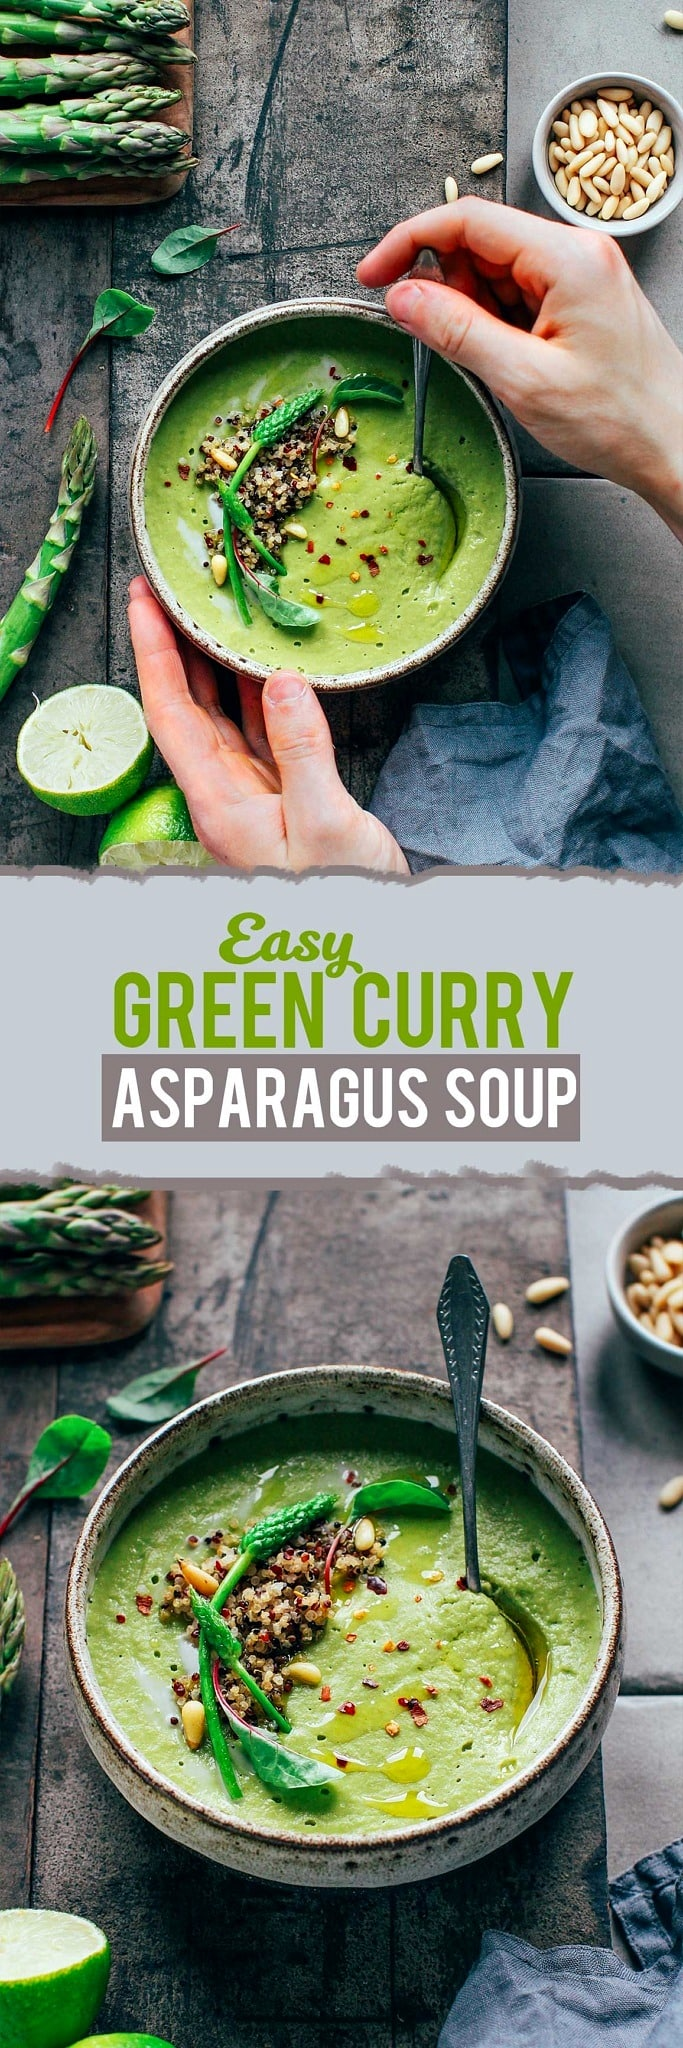 Easy Green Curry Asparagus Soup